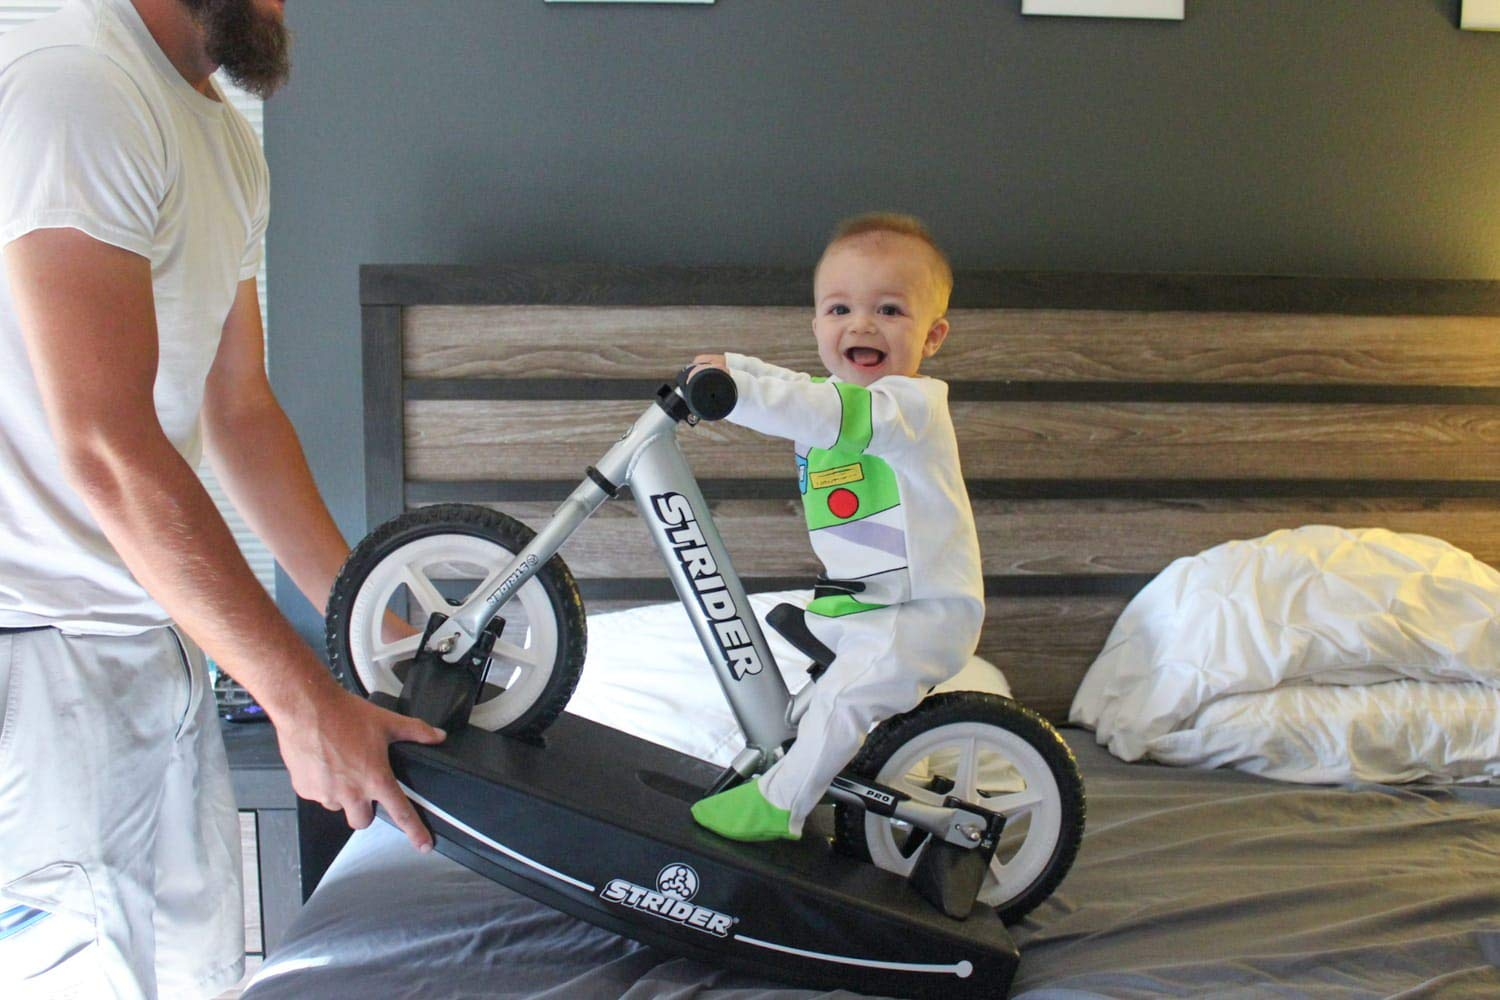 Strider - 12 Pro Baby Bundle with Balance Bike and Rocking Base, Ages 6 Months to 5 Years, Silver by Strider (Image #8)